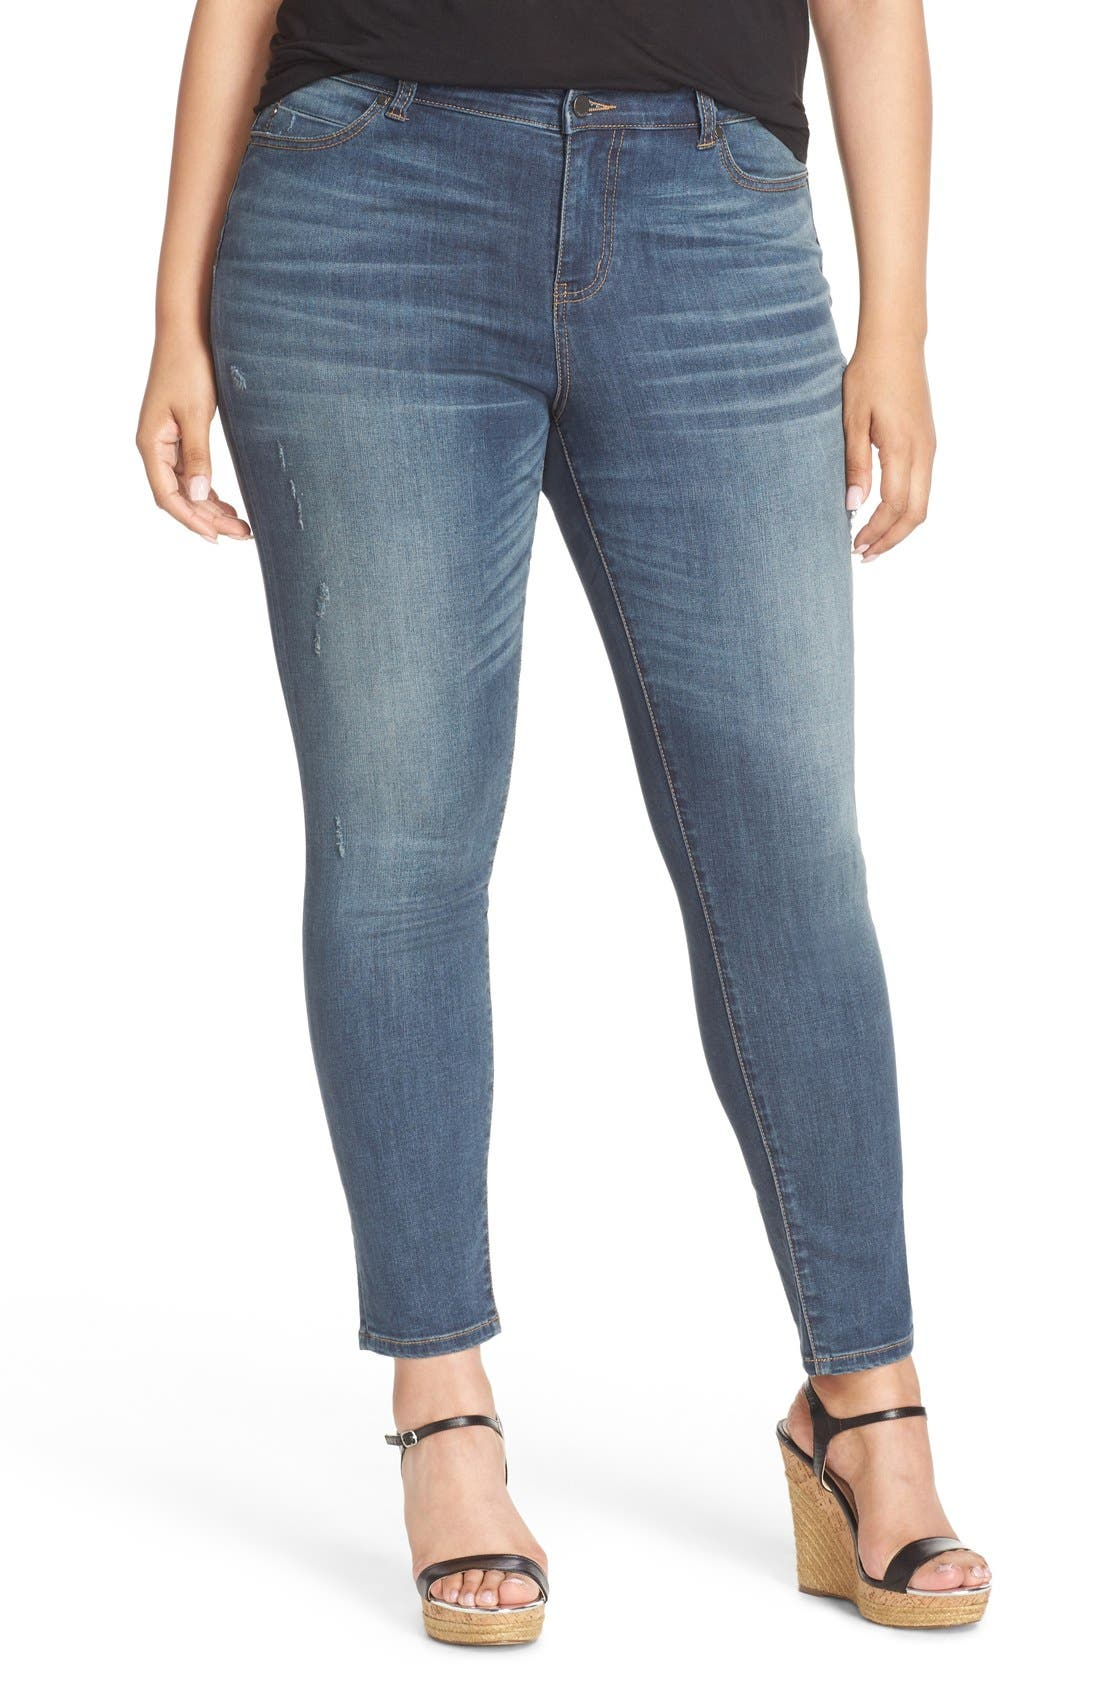 Alternate Image 1 Selected - Caslon® Distressed Stretch Ankle Skinny Jeans (Storm) (Plus Size)